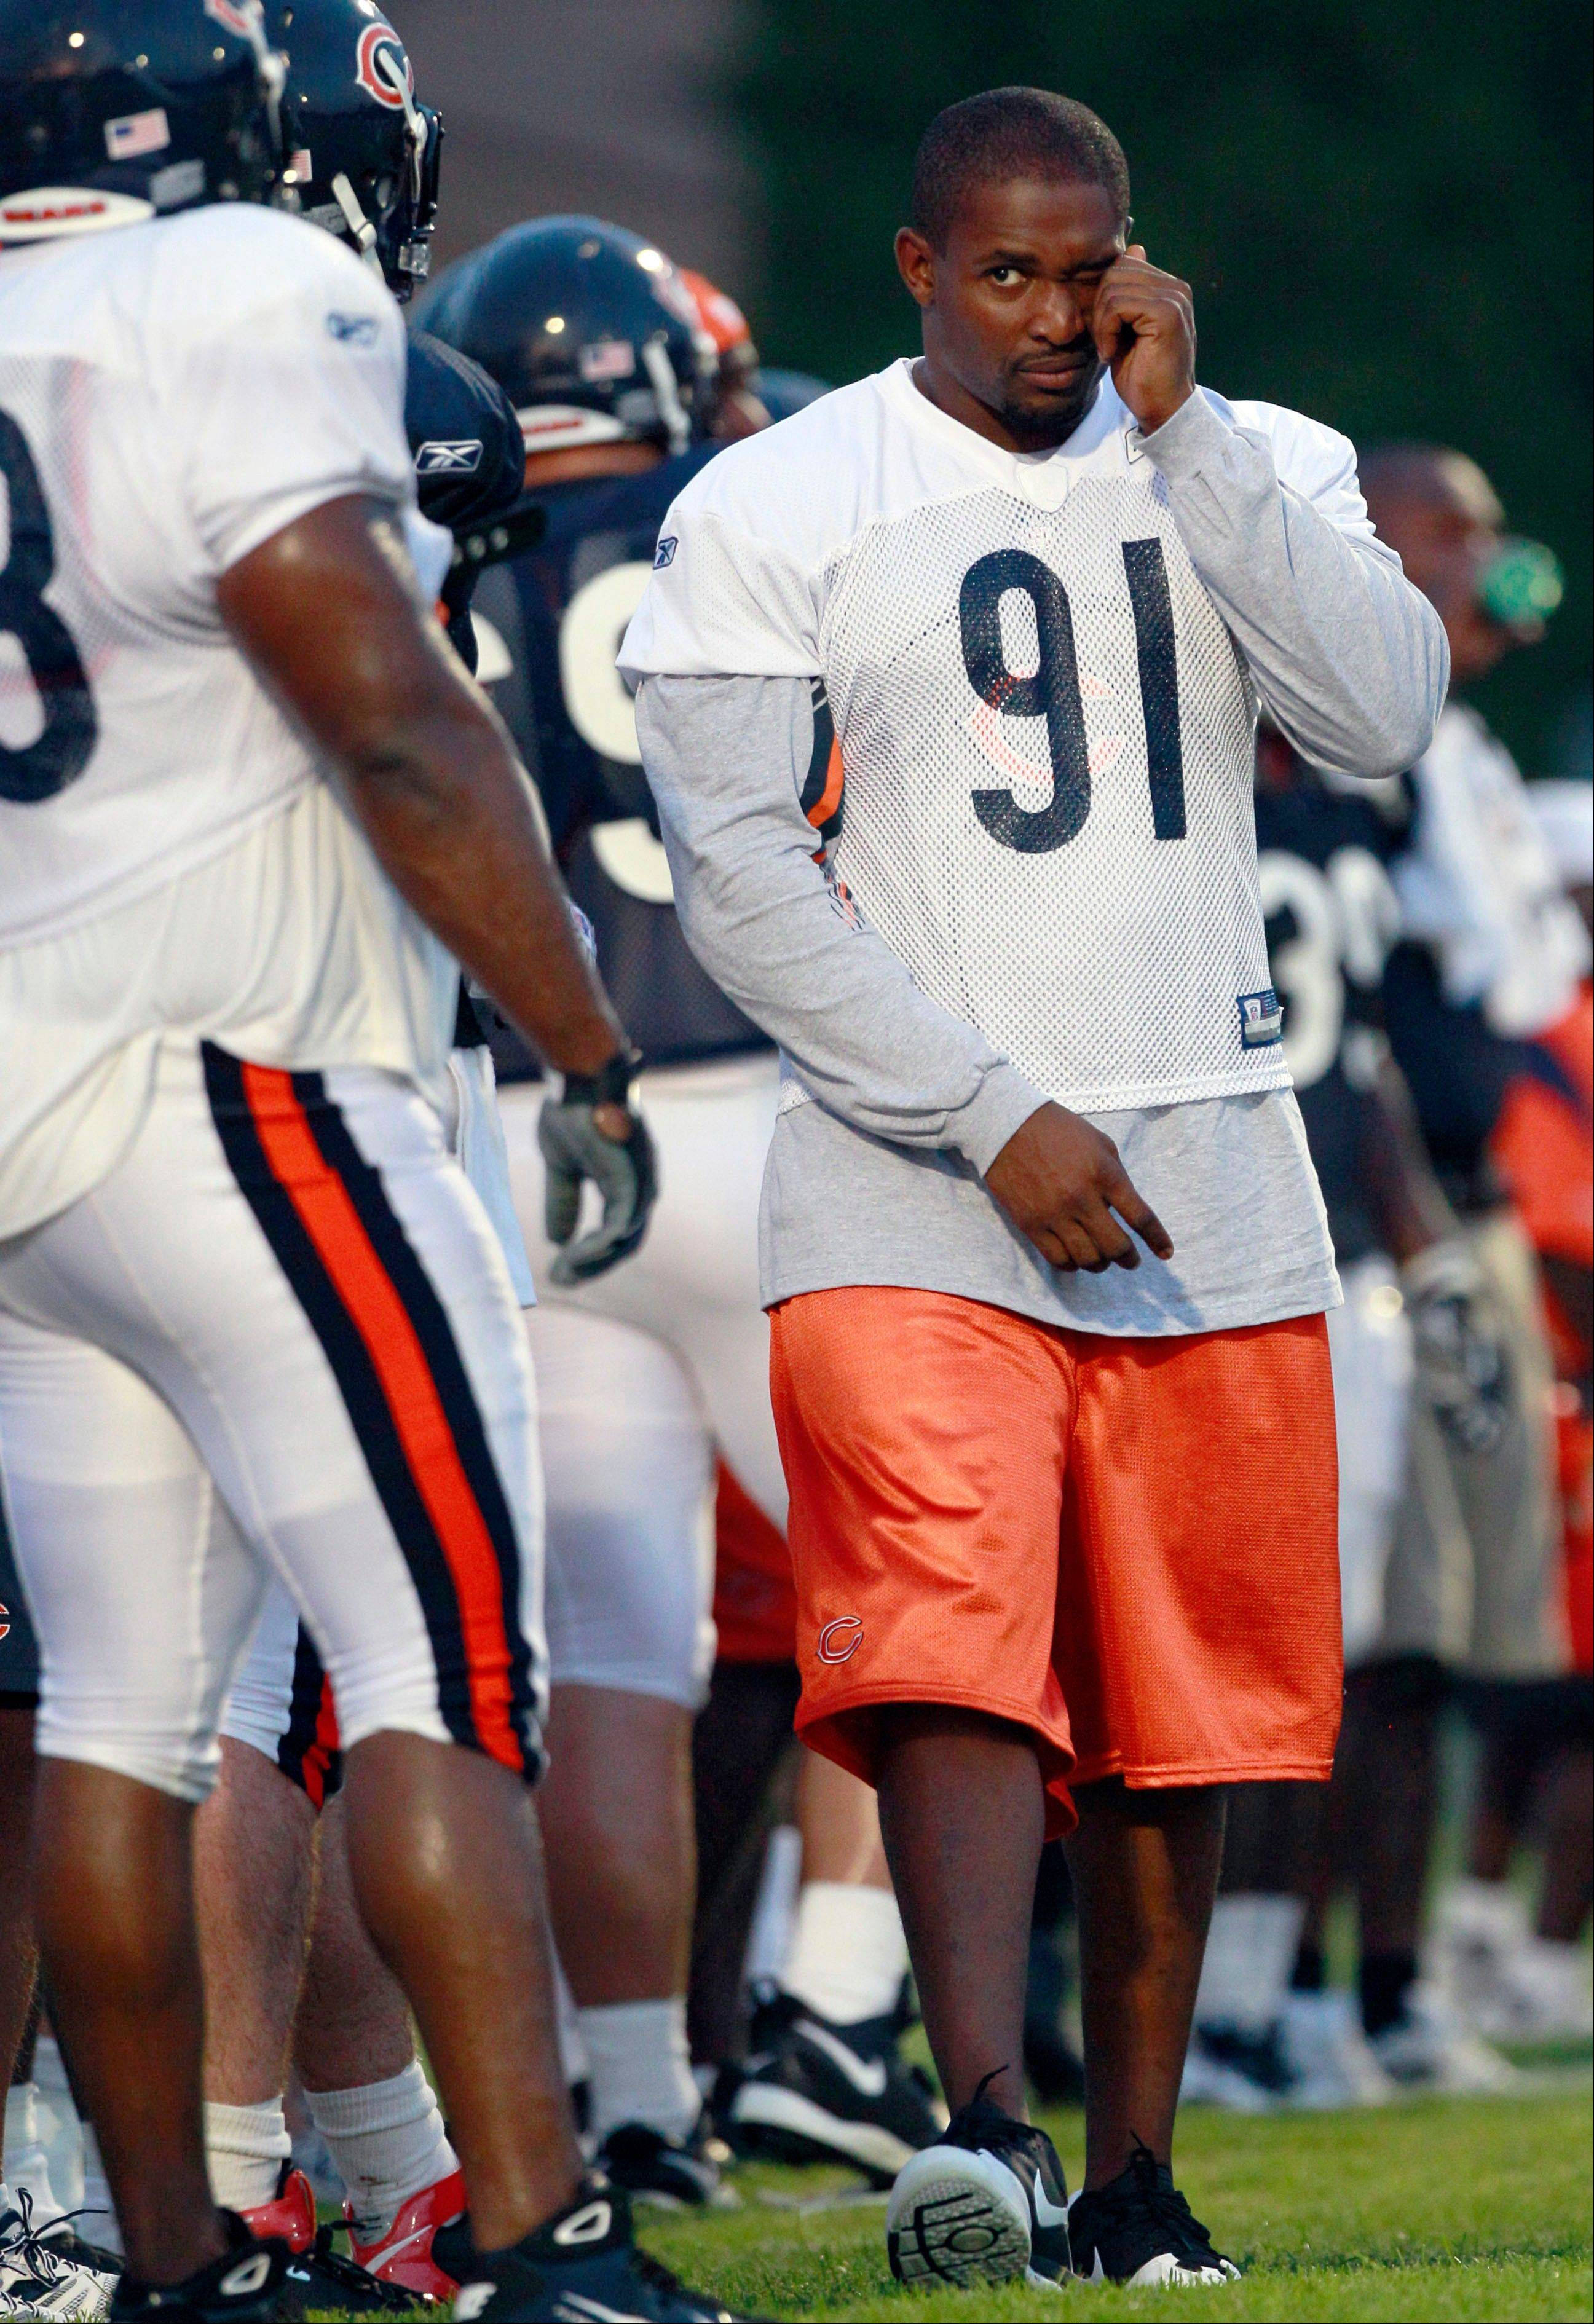 Chicago Bears' Amobi Okoye wipes his eye as he walks on the sideline during NFL football training camp Monday at Olivet Nazarene University in Bourbonnais.